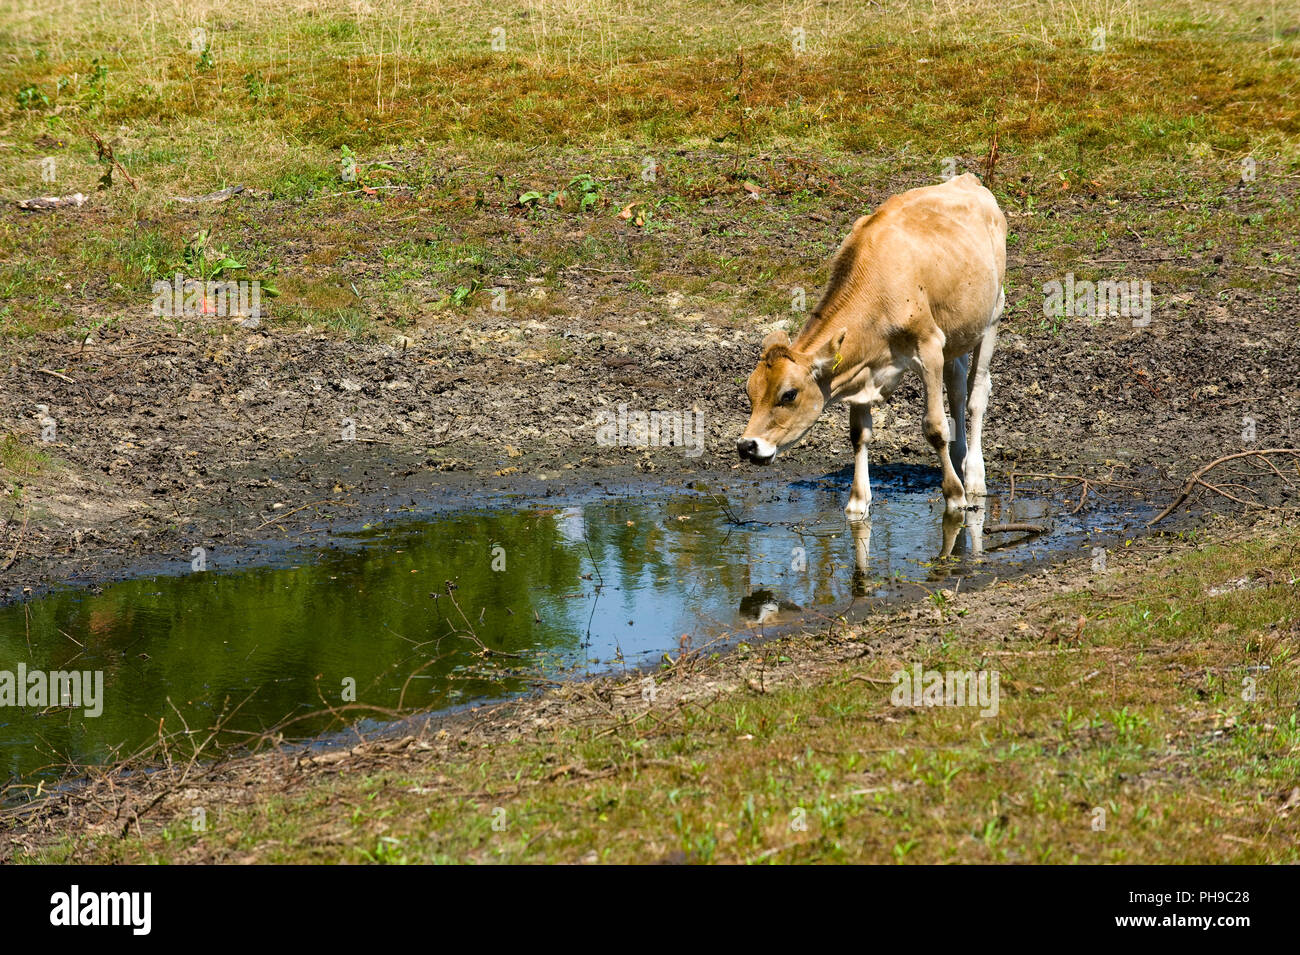 1f0136b487e8d A cow has little water to drink in a pond after a period of drought in